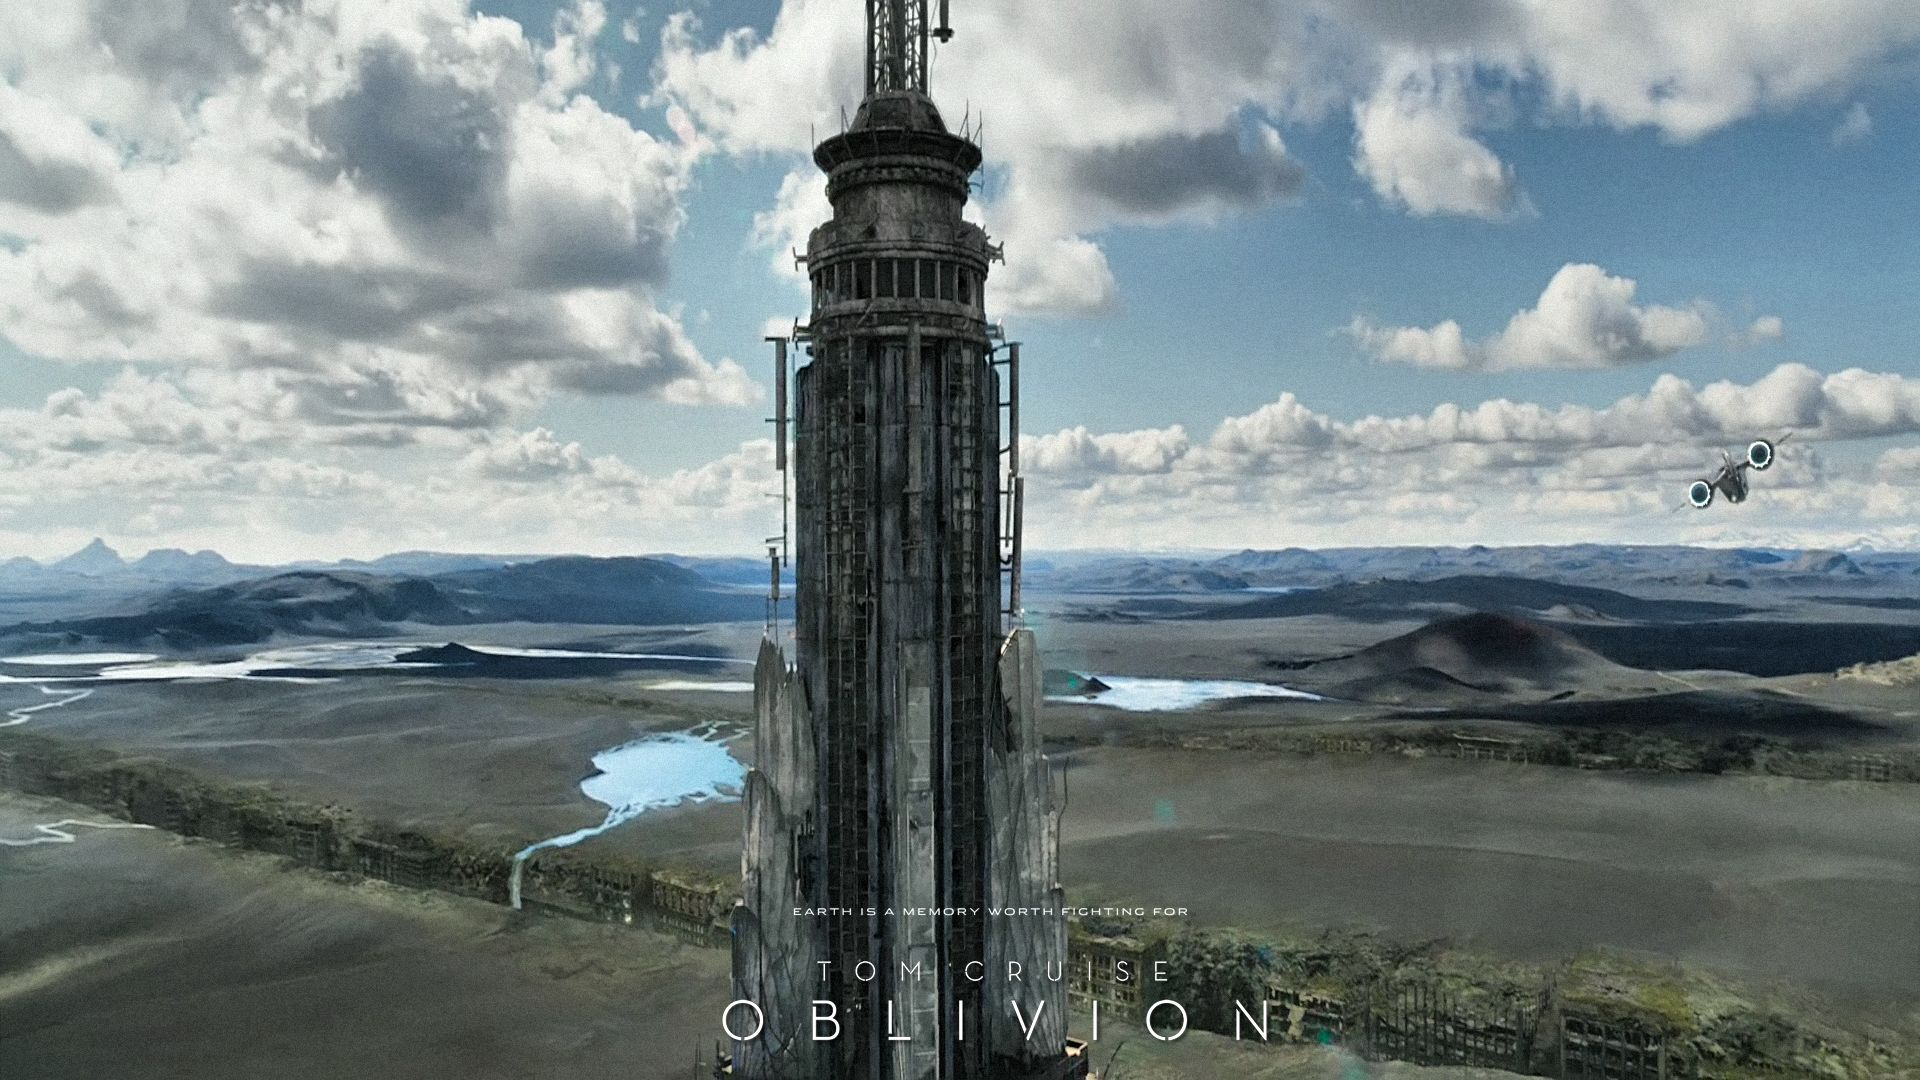 tom cruise oblivion movie wallpaper | wallpapers for desktop